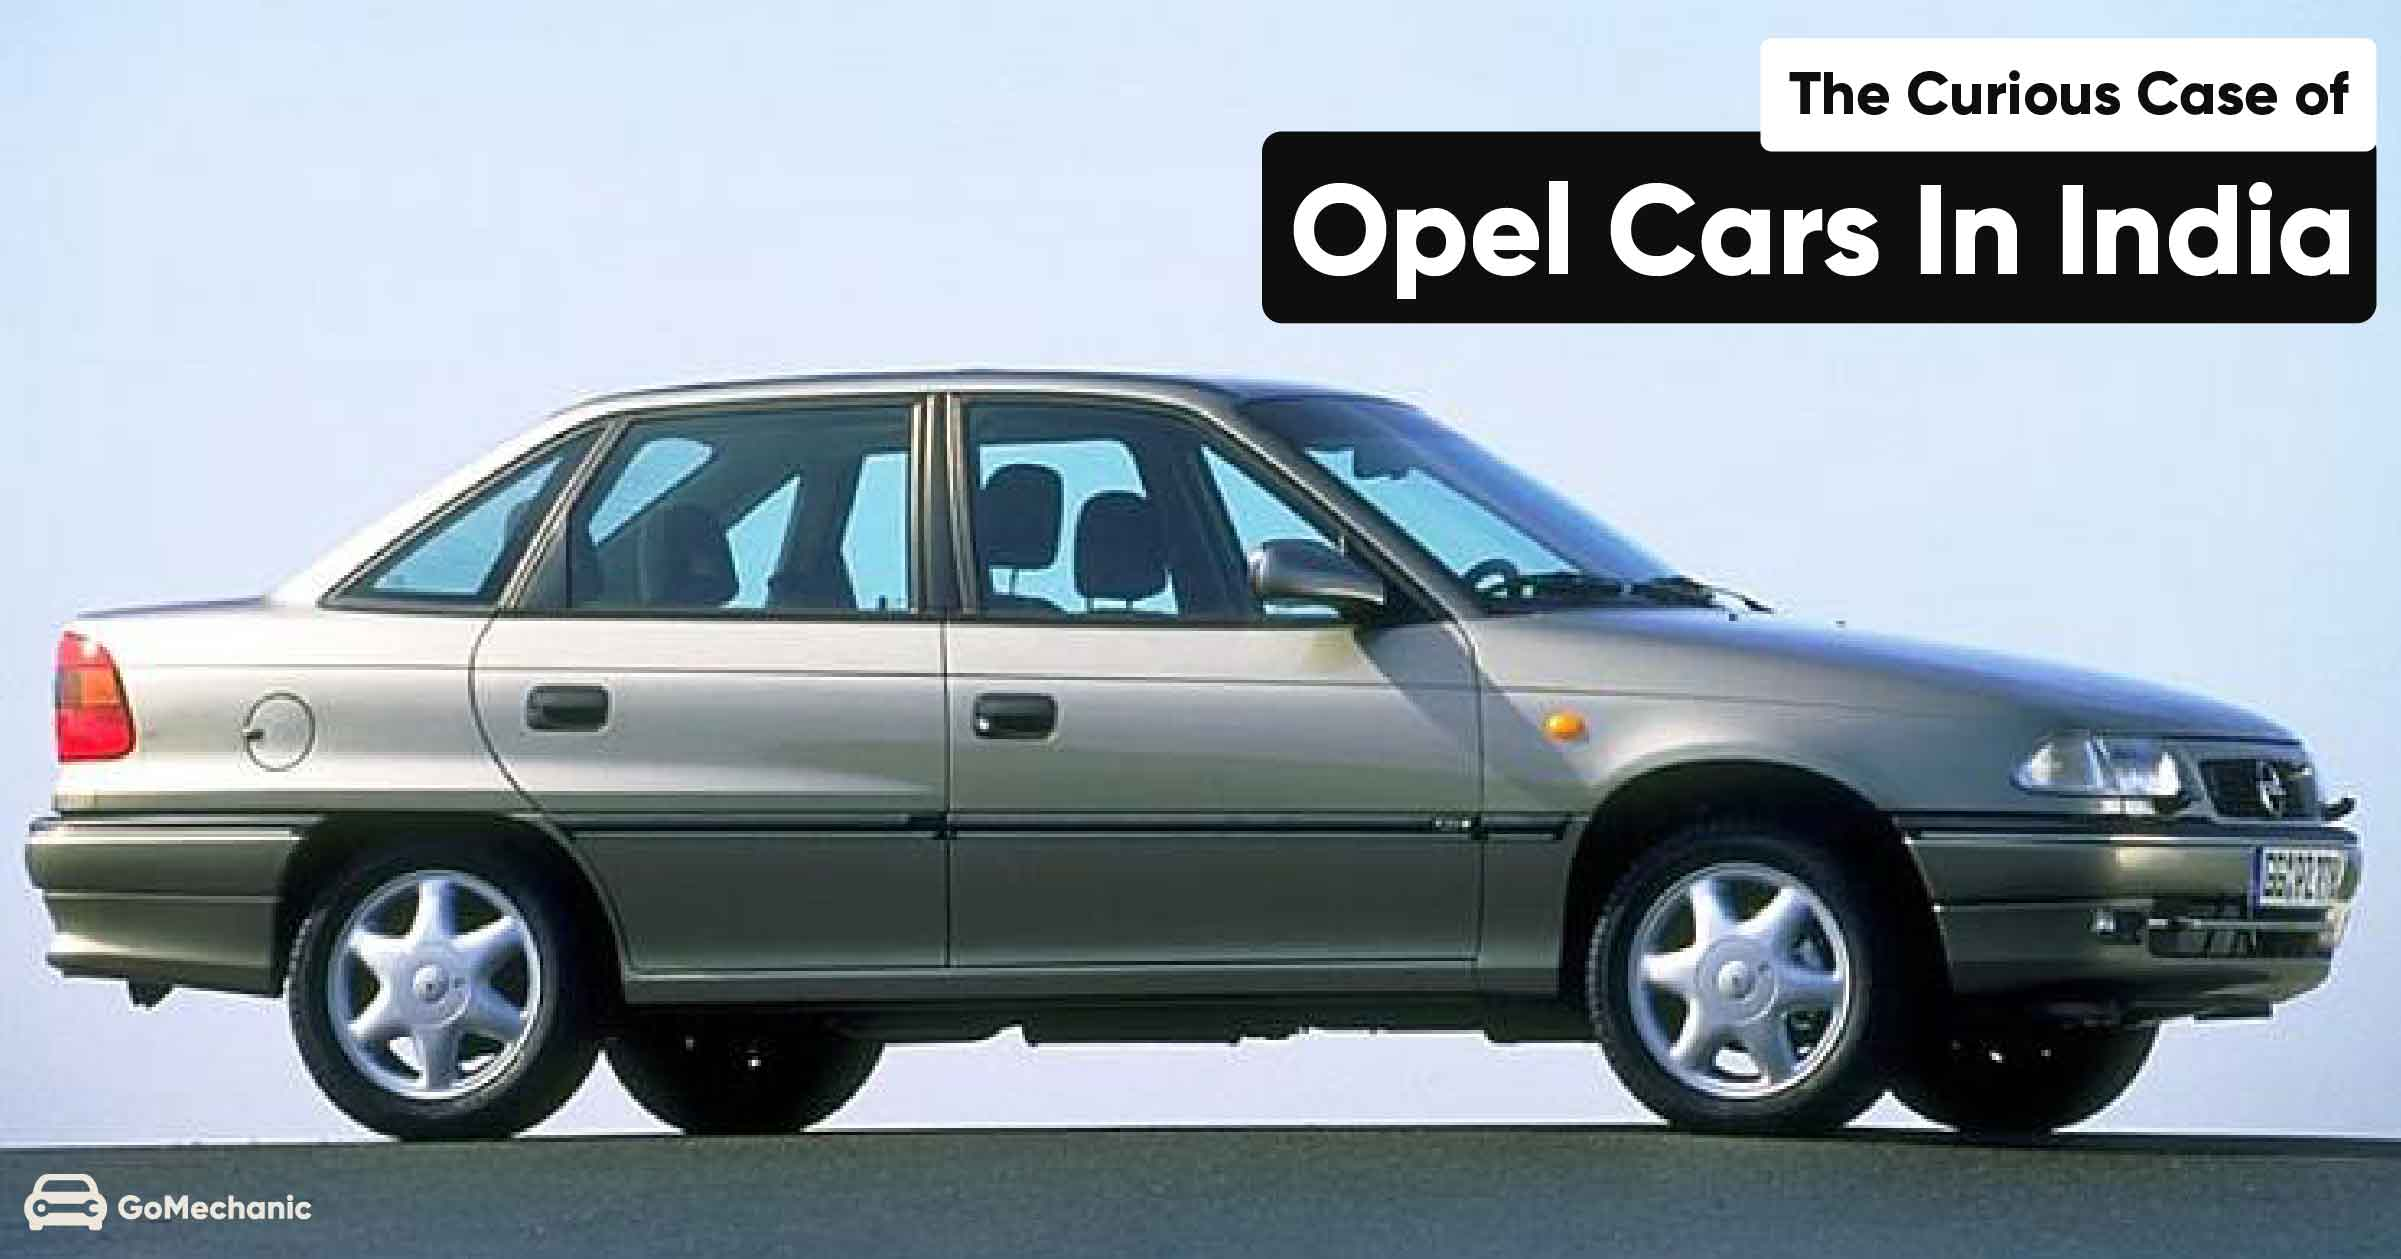 The Curious Case Of Opel Cars In India